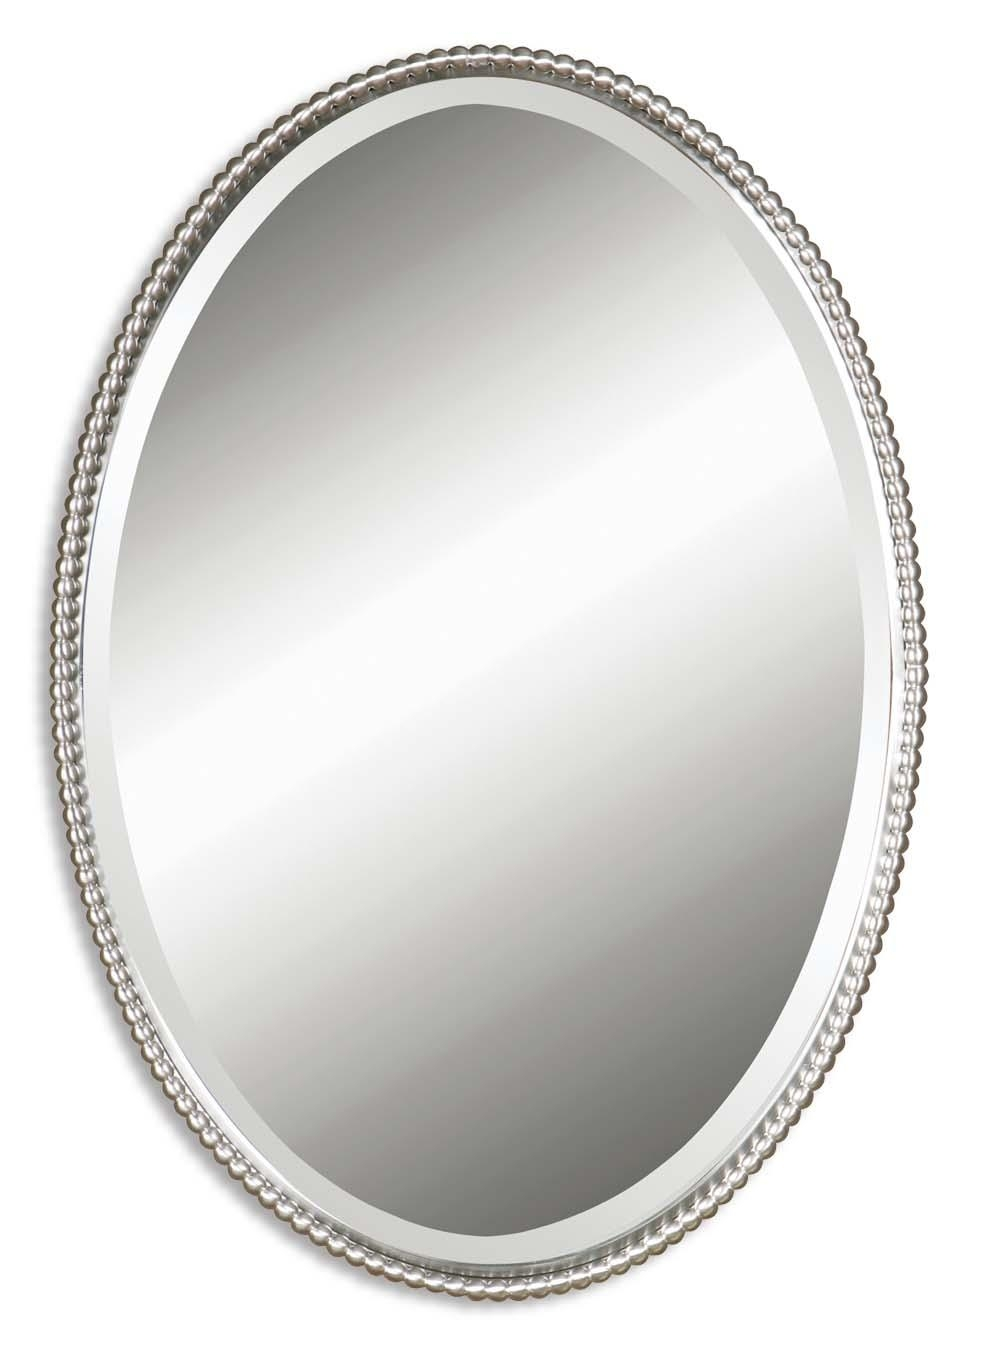 Uttermost Sherise Brushed Nickel Oval Mirror 01102 B Inside Silver Oval Wall Mirror (Photo 17 of 20)